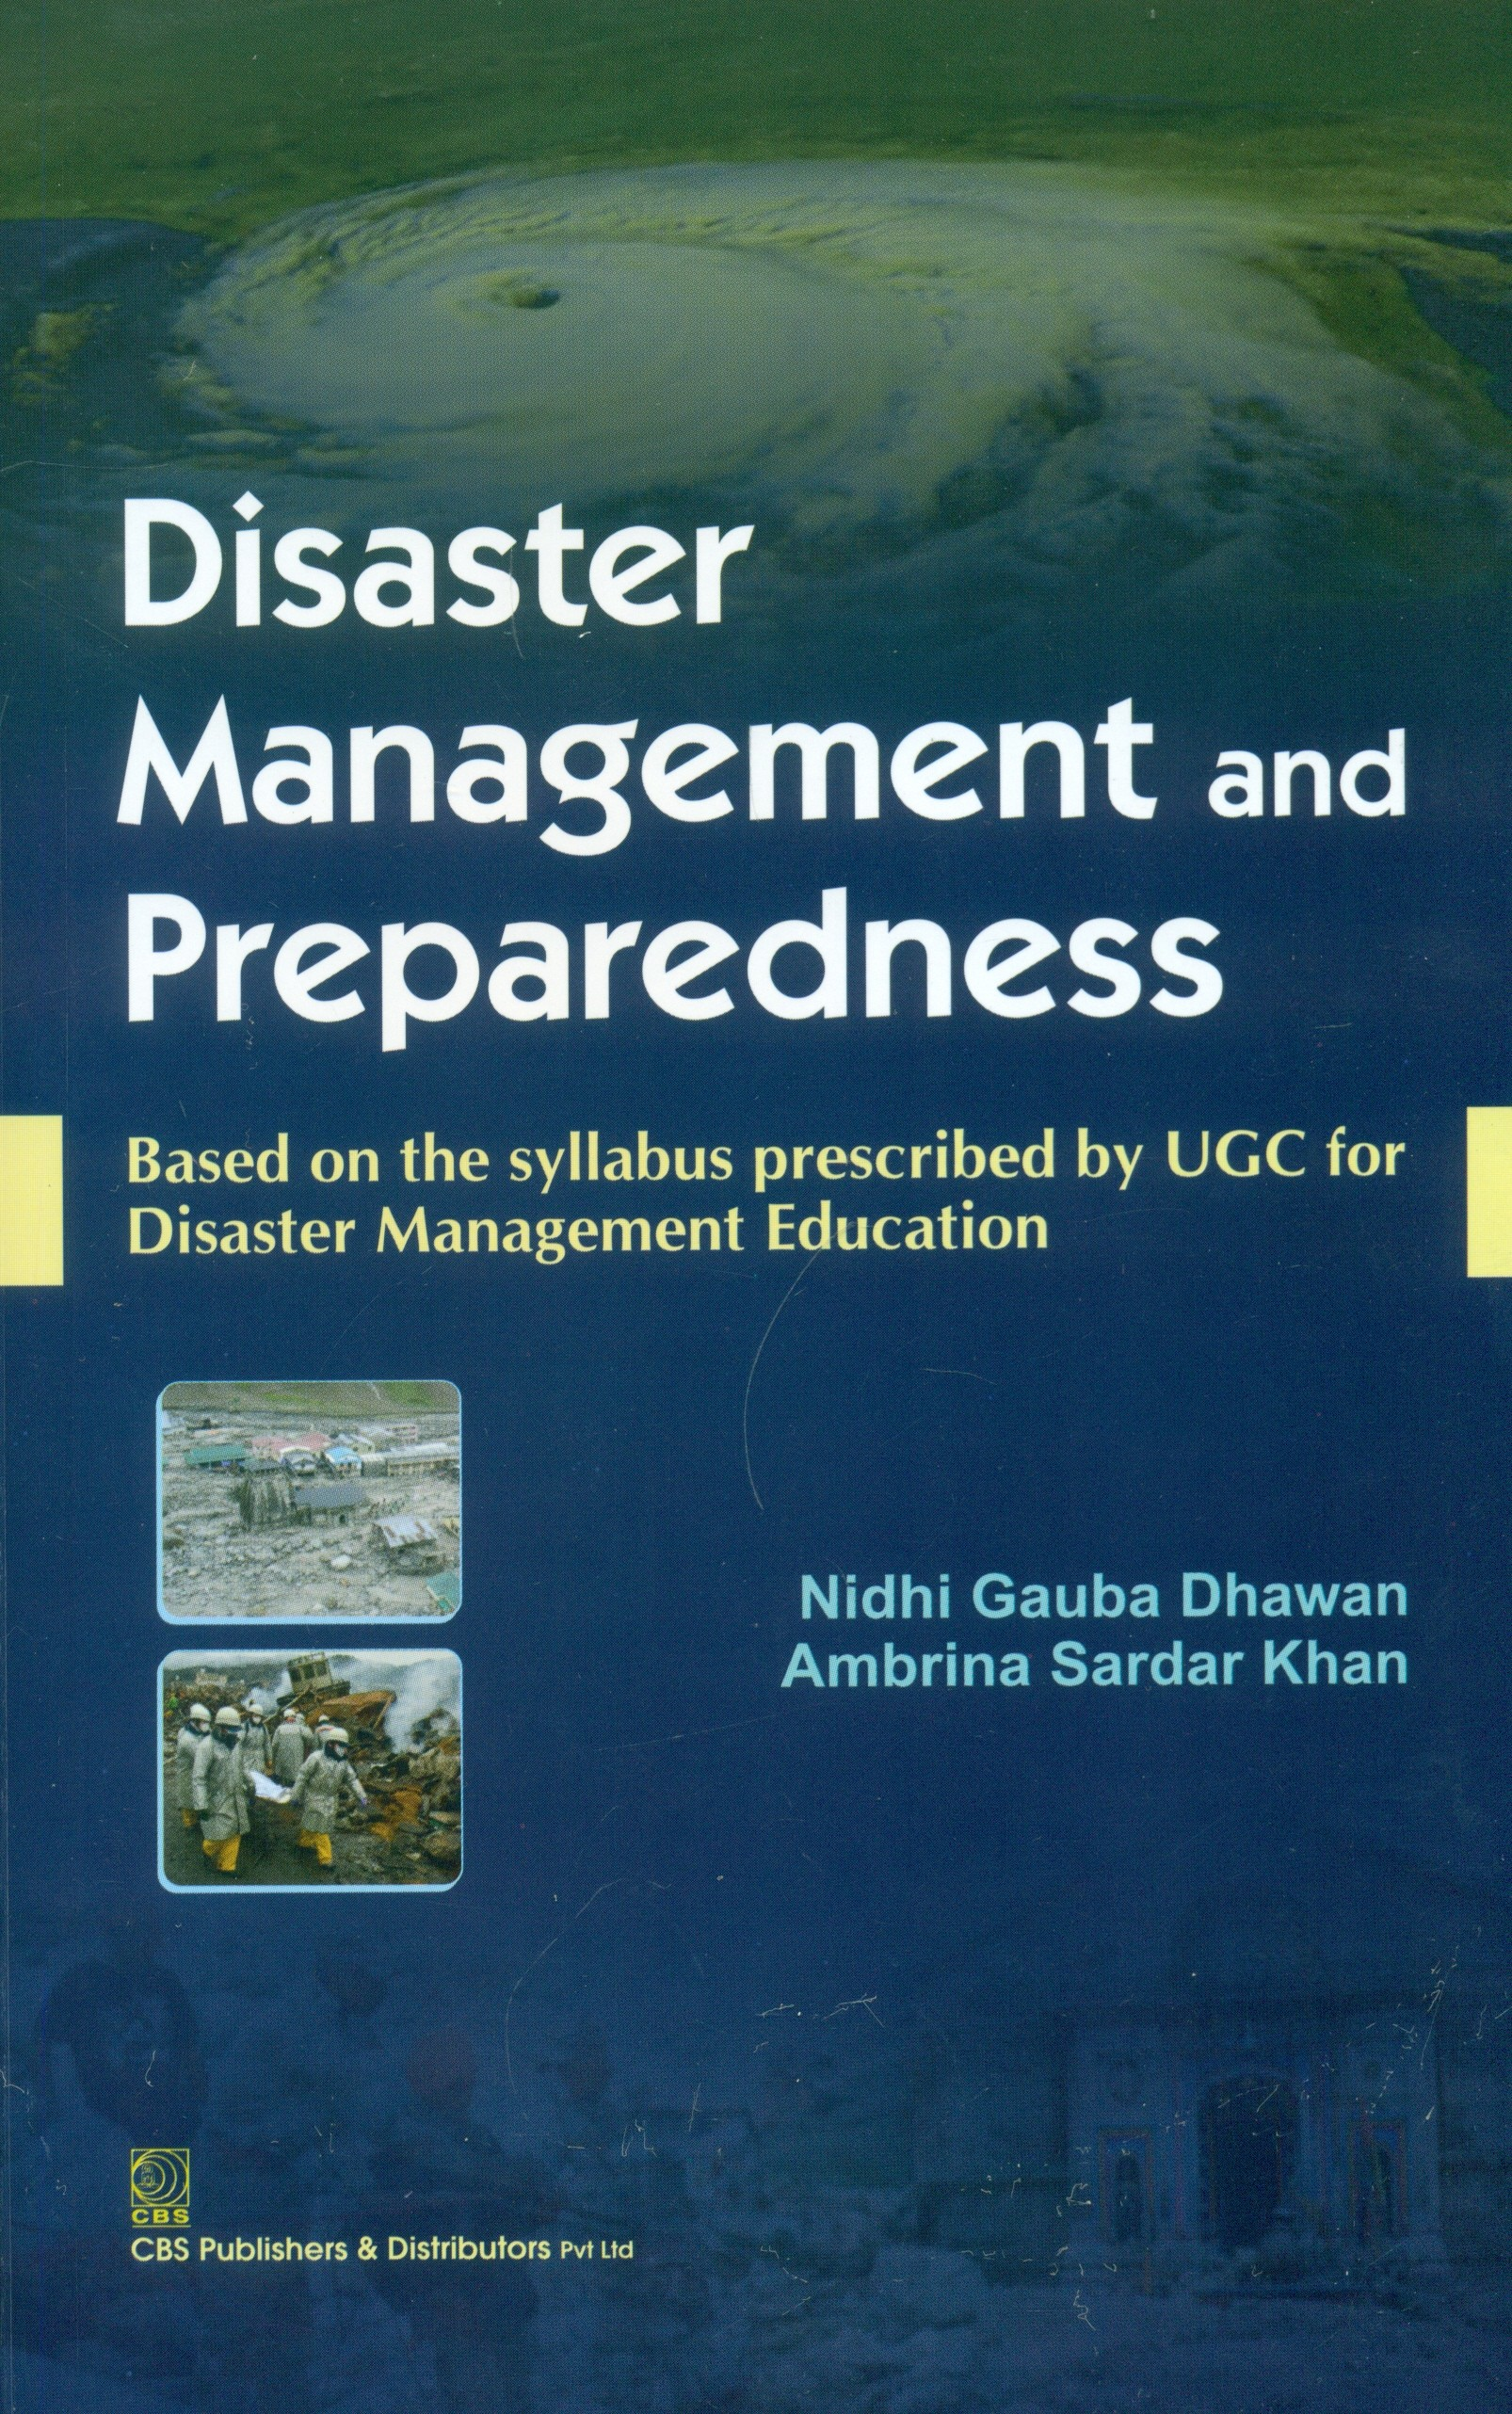 Disaster Management and Preparedness (1st Reprint)  Based on the syllabus prescribed by UGC for Disaster Management Education